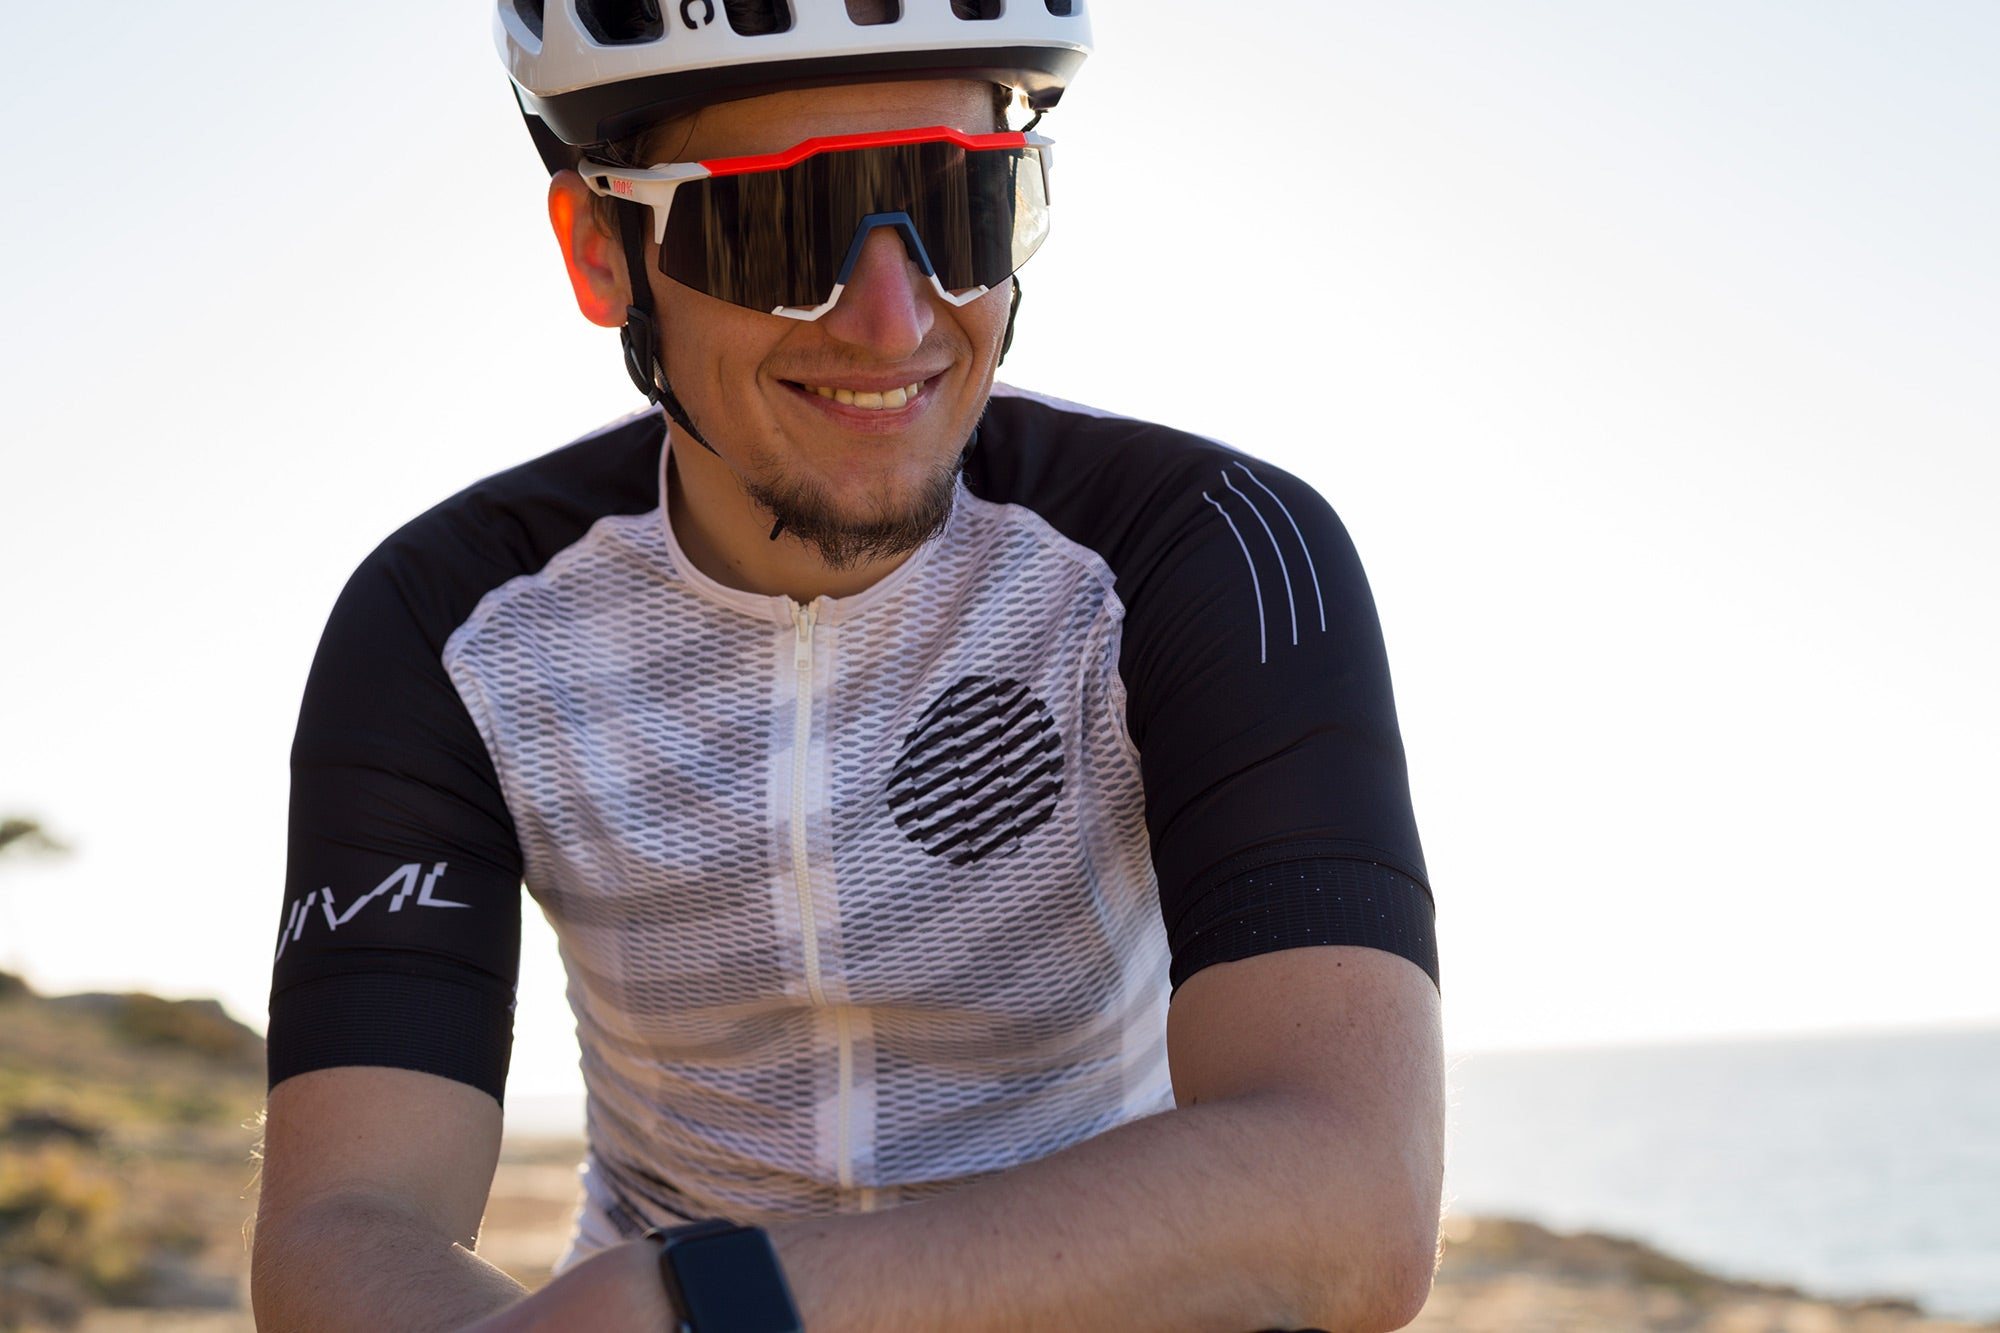 JML Japan Aero Jersey Summer - Jerseys Made with Love